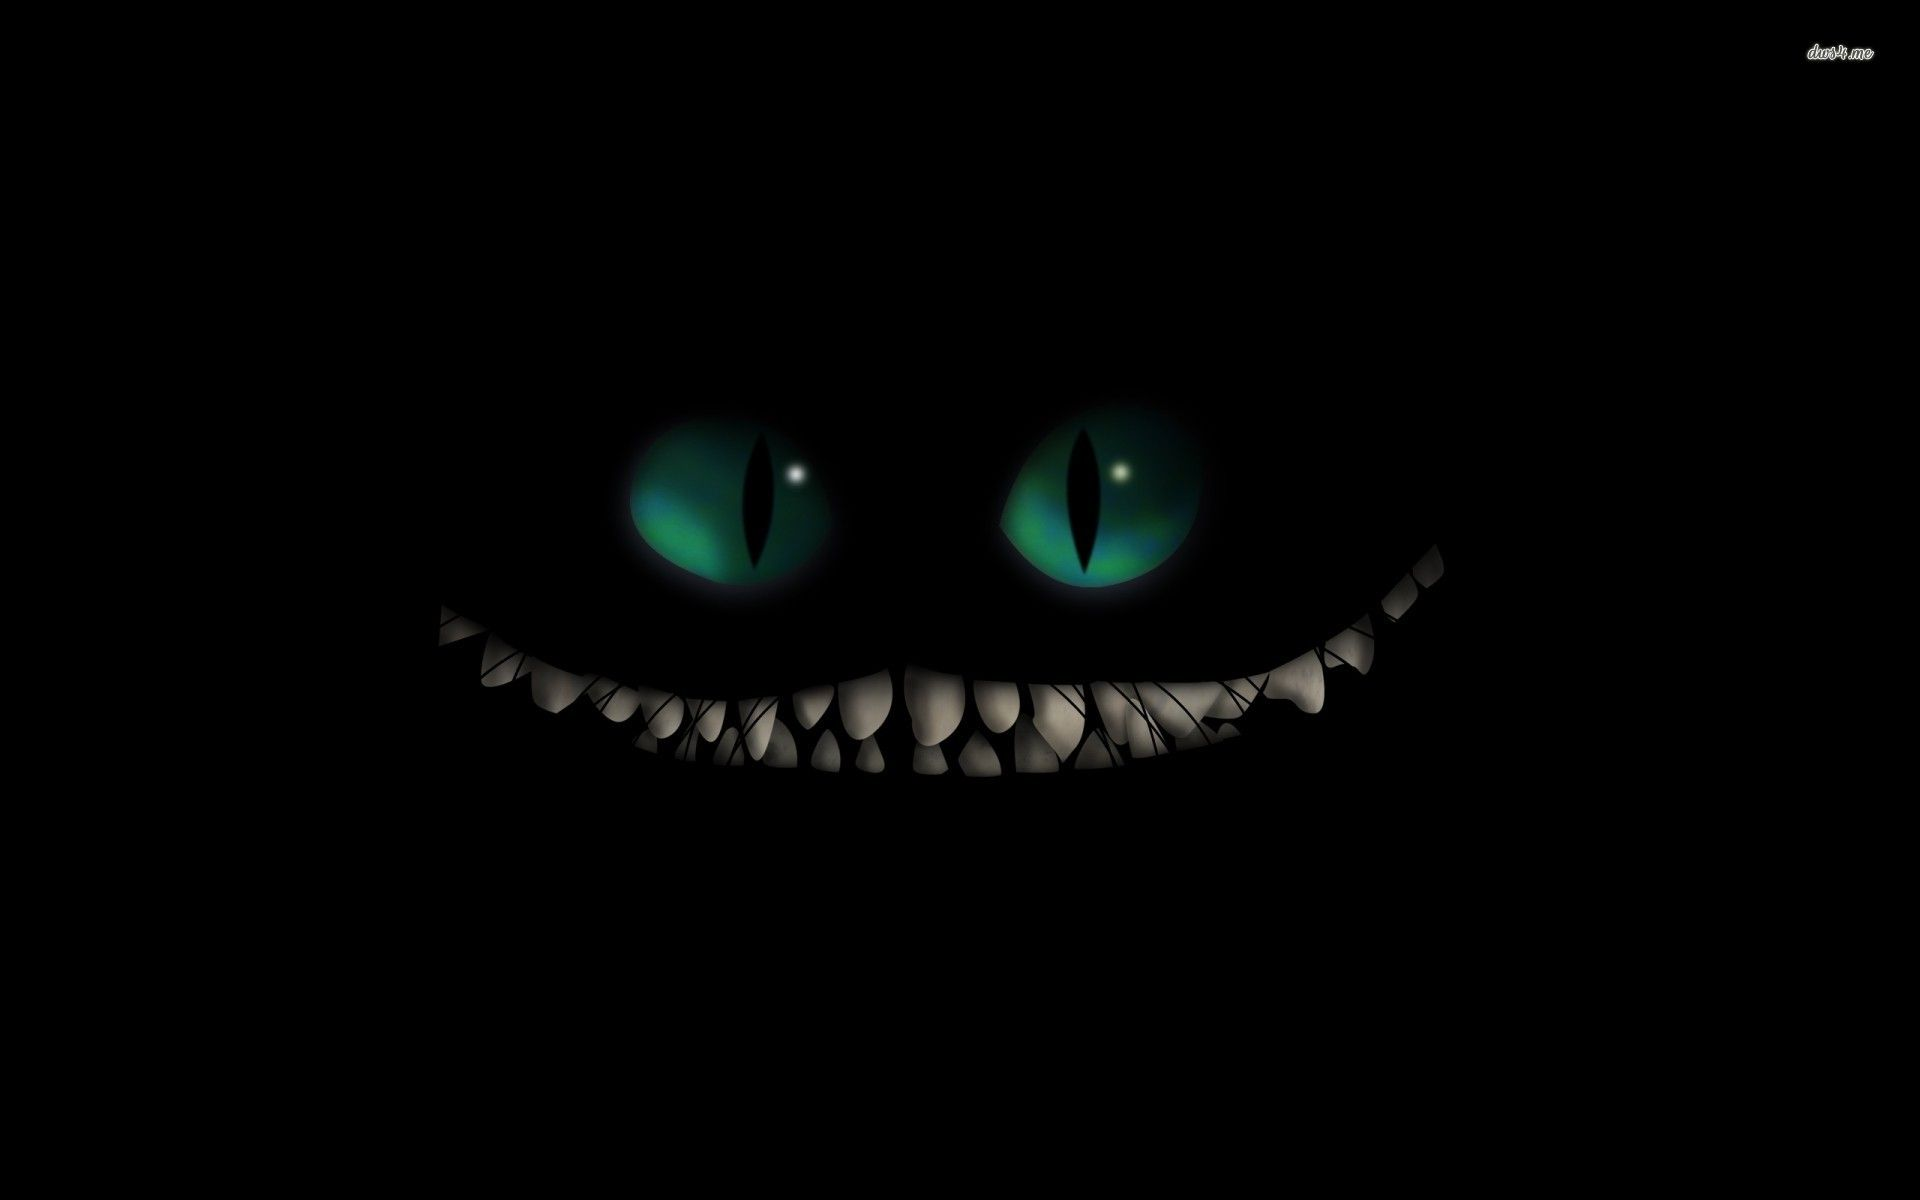 Cheshire Cat Smile Wallpaper